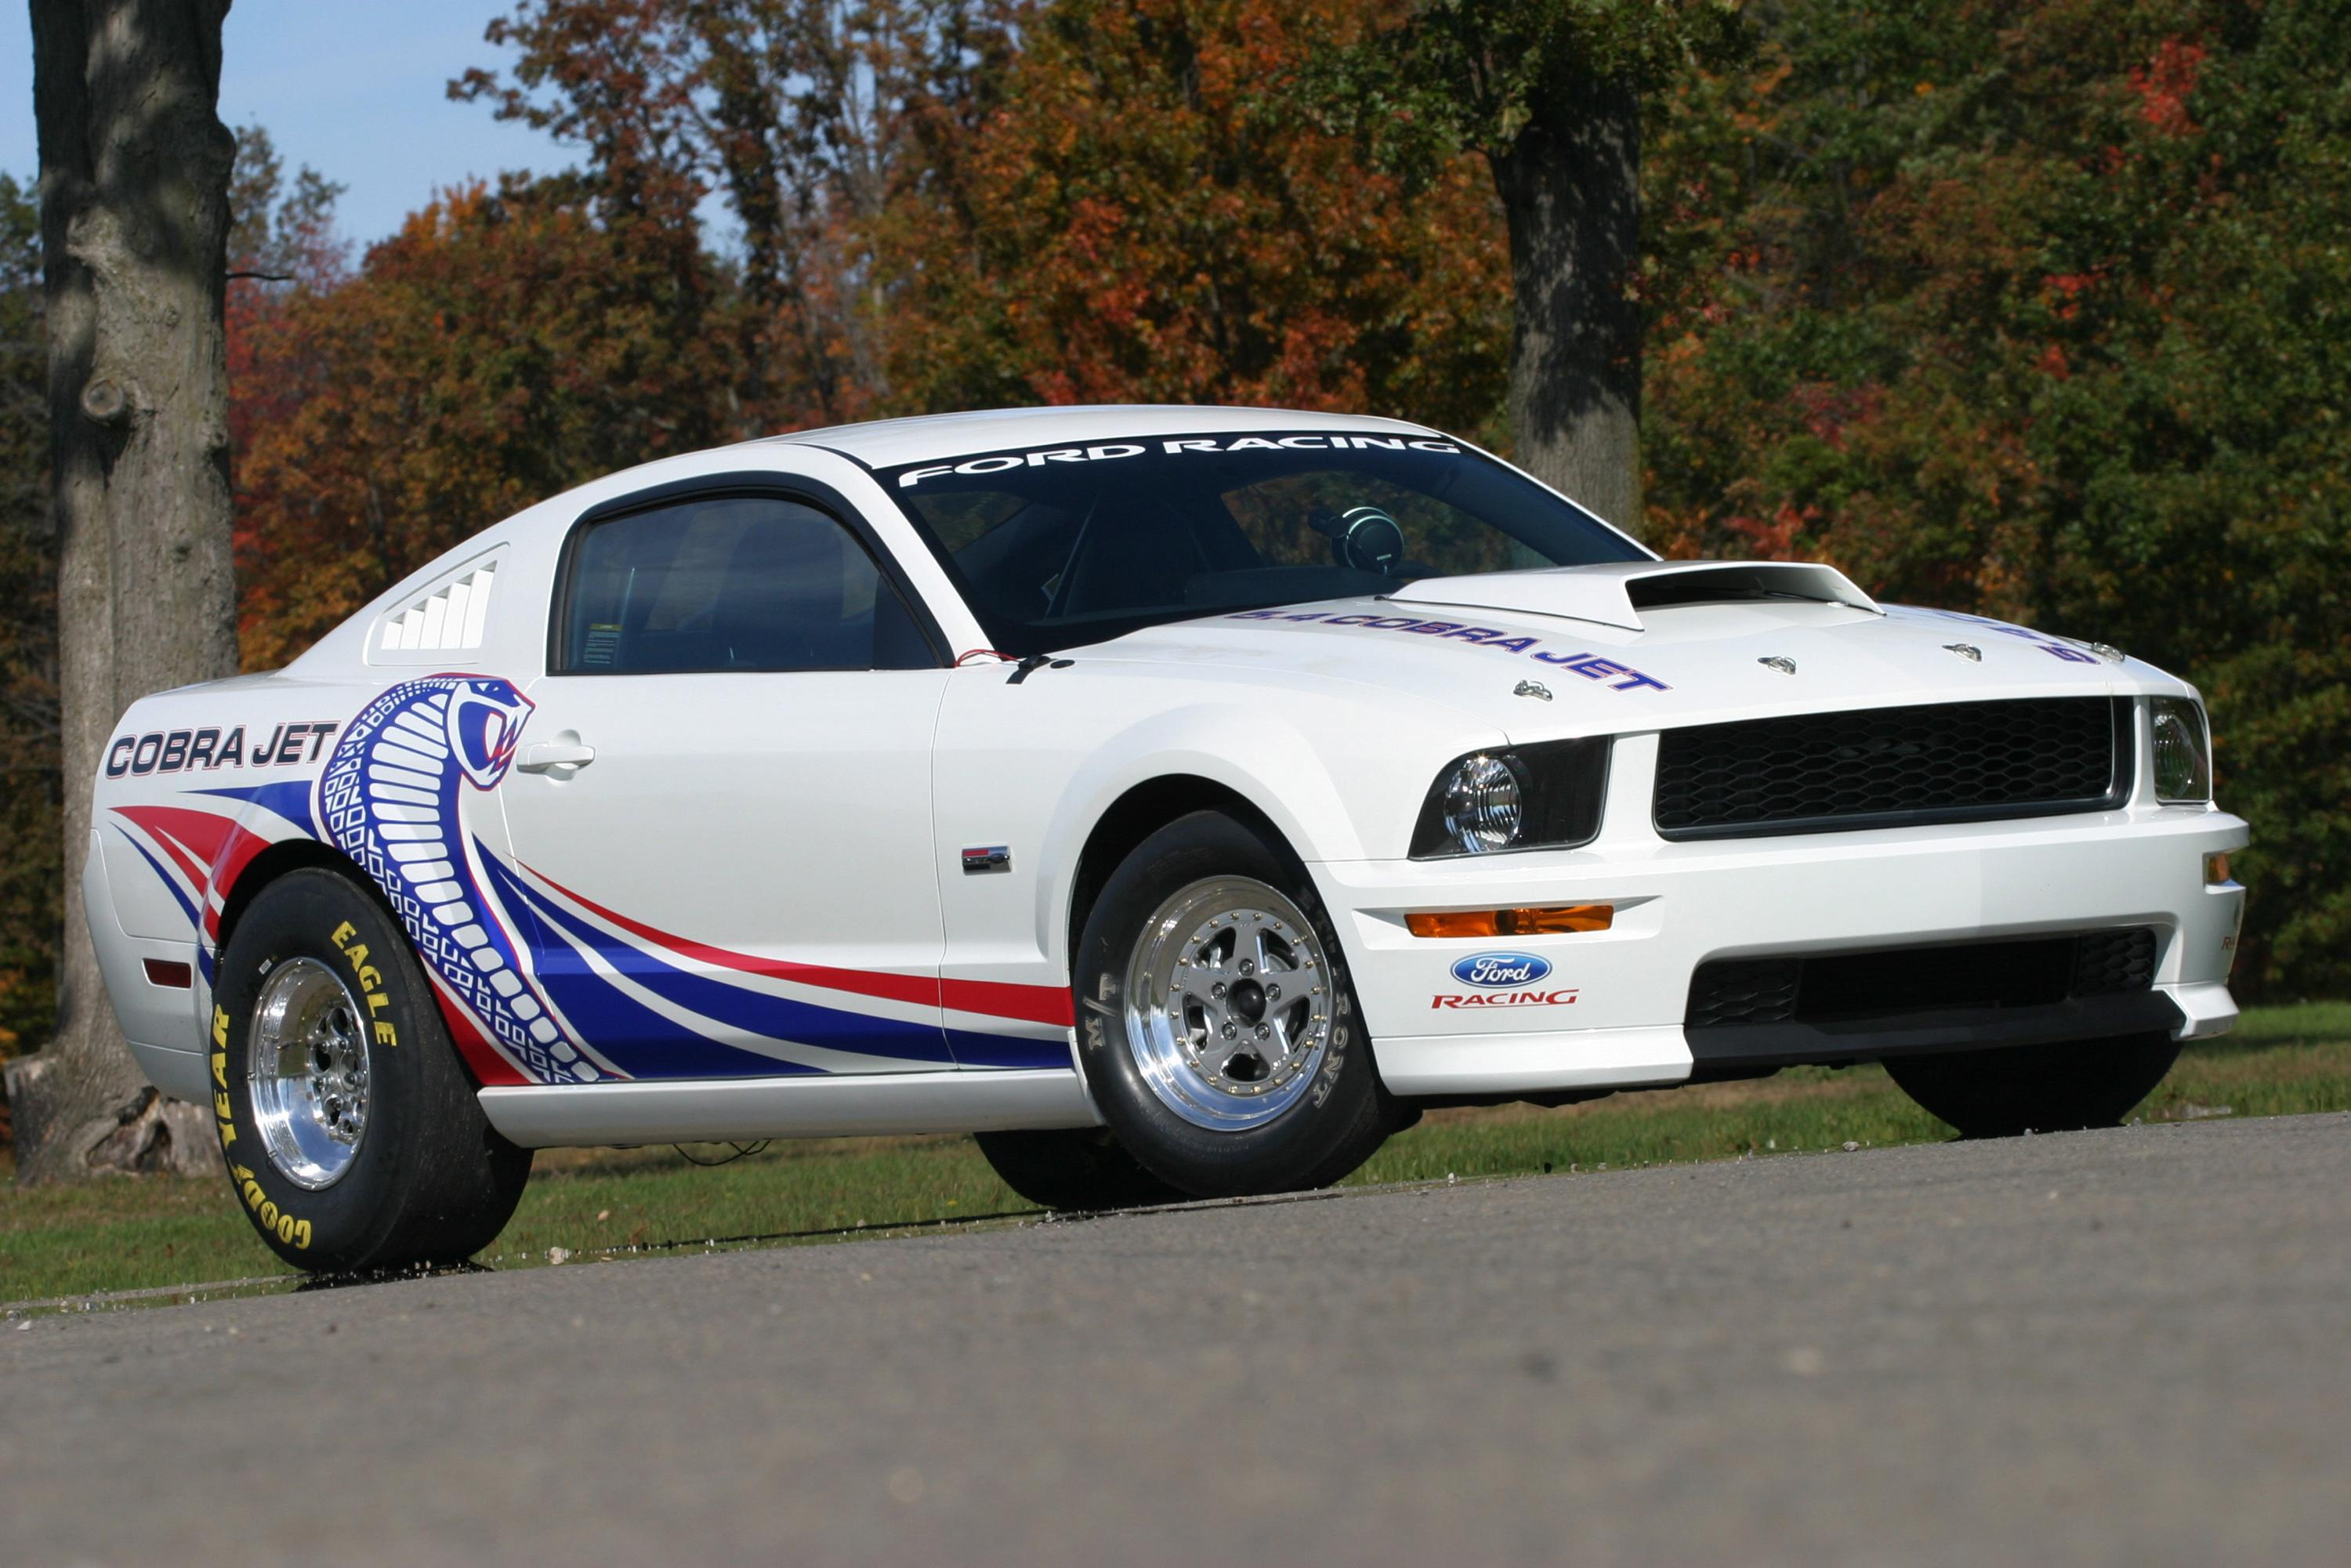 2008 Ford Cobra Jet Mustang Top Speed